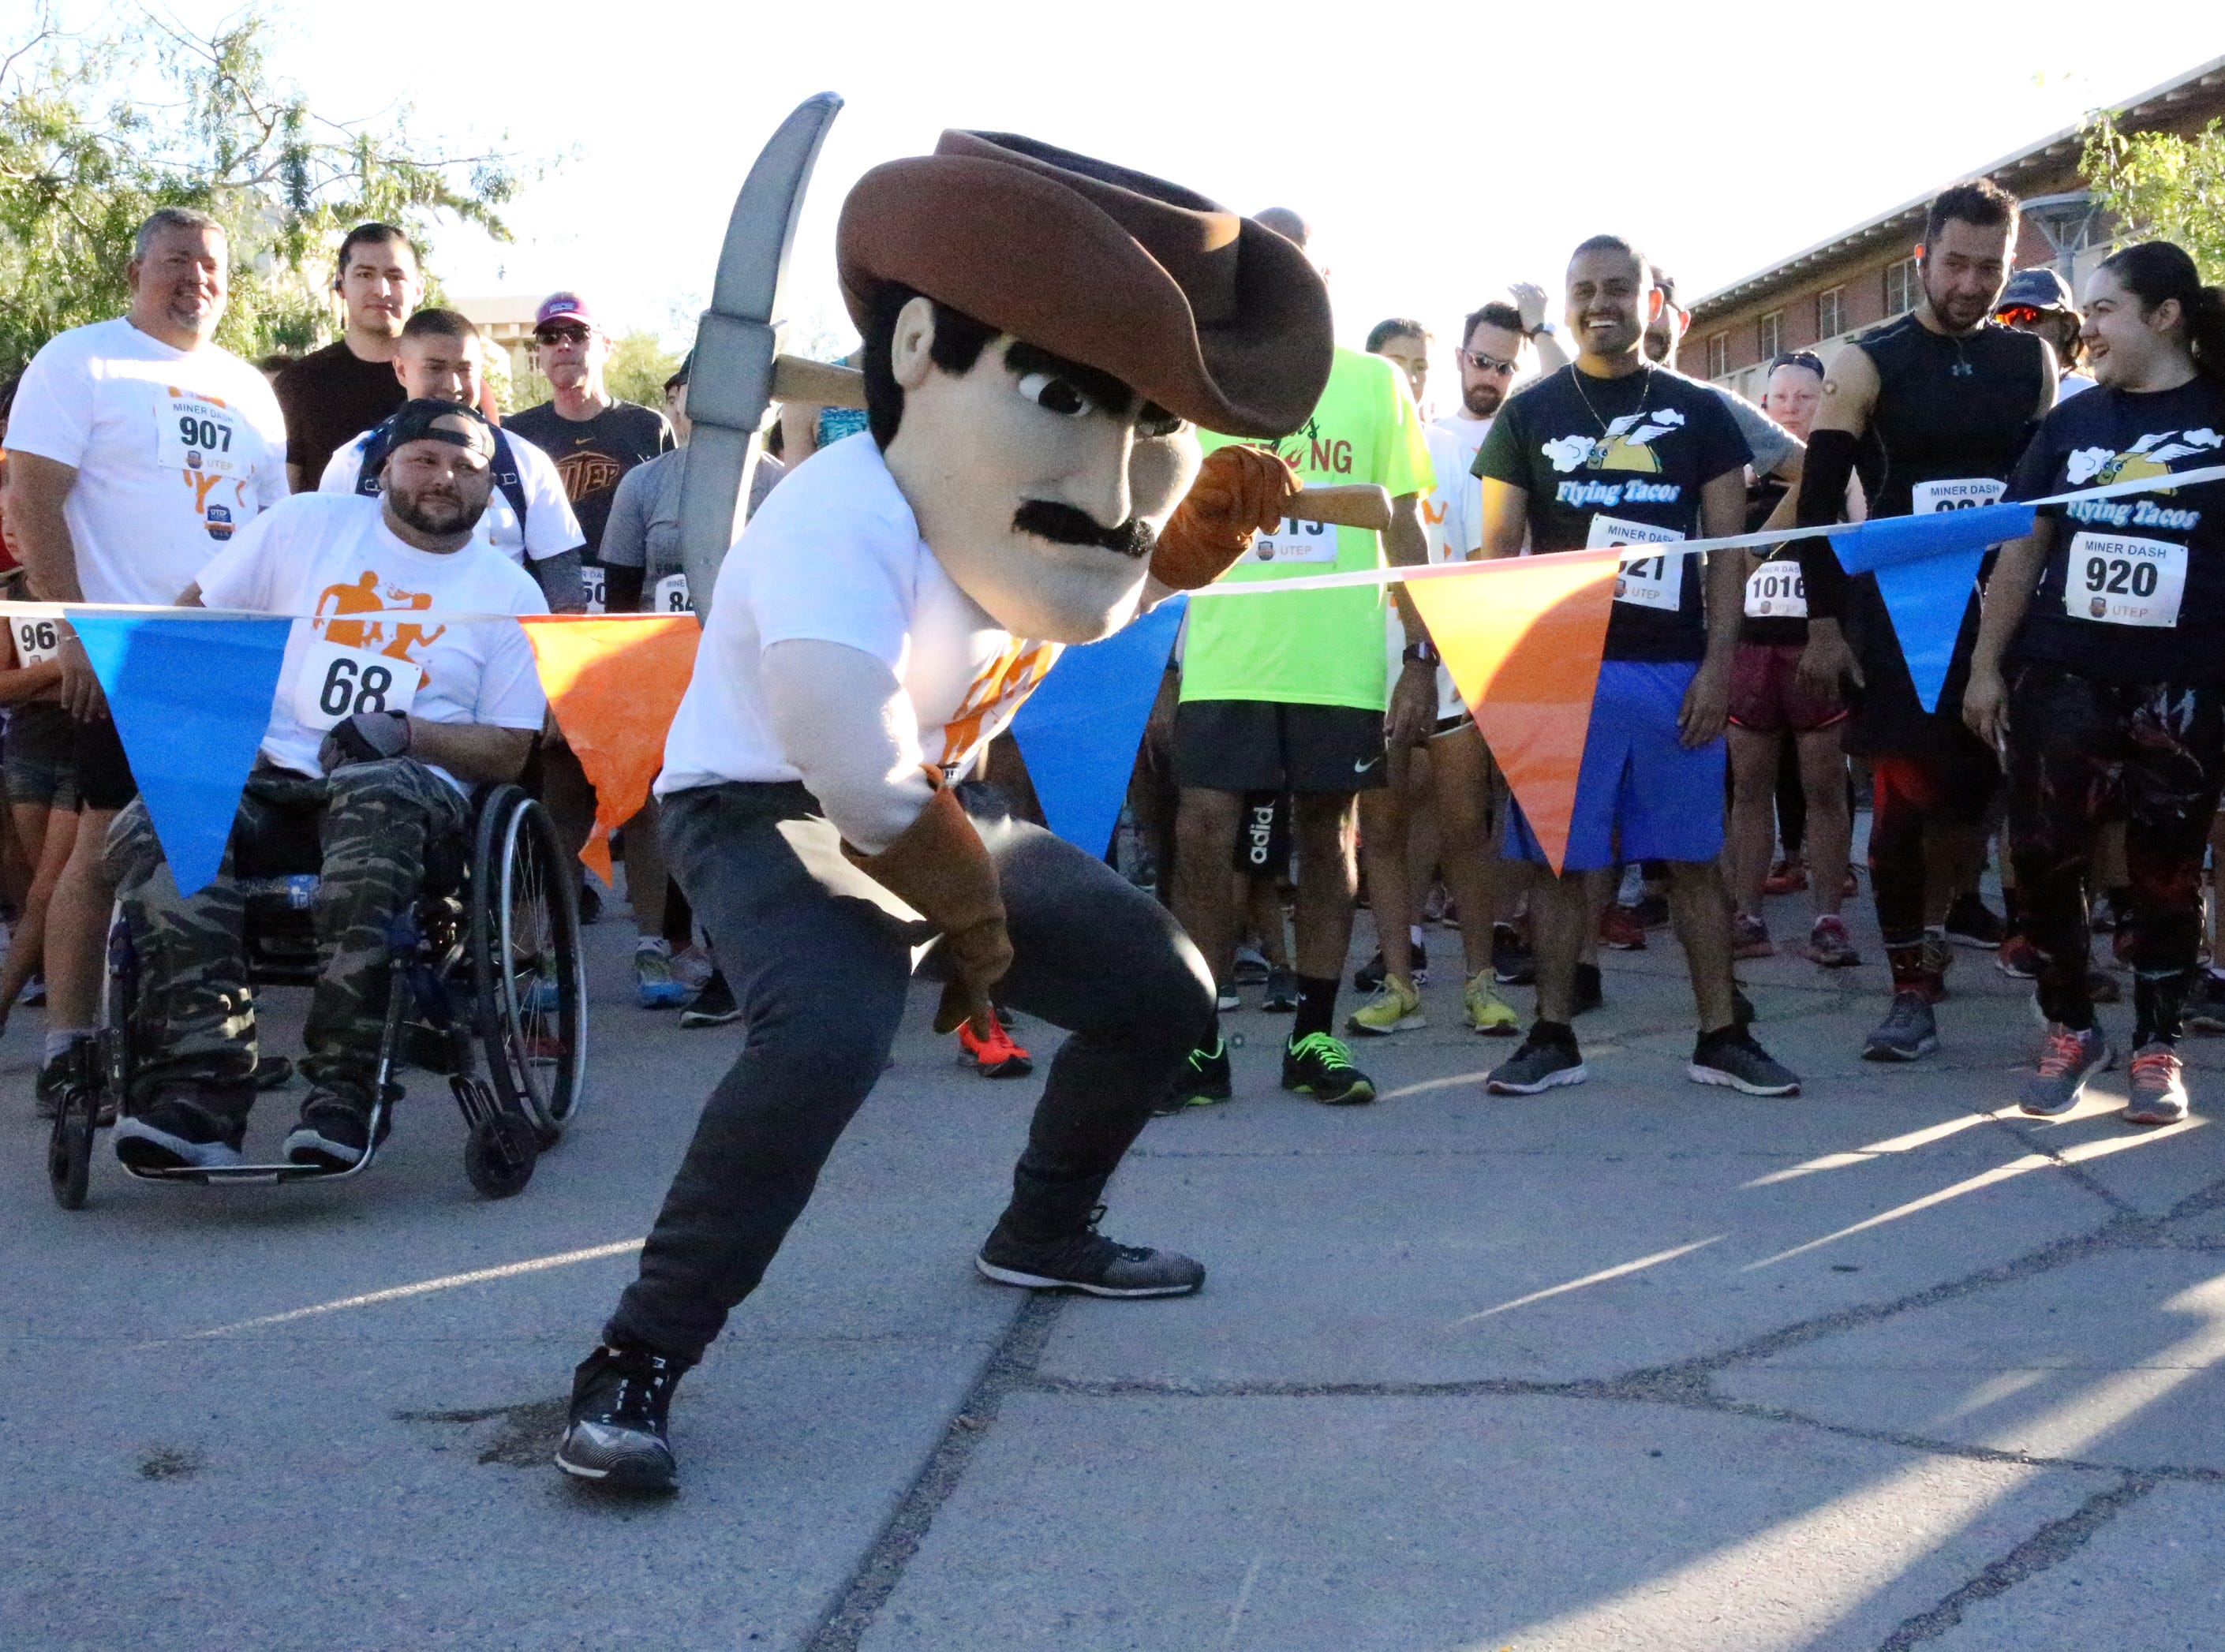 Paydirt Pete urges on runners at the start of the 9th Miner Dash & Family Fiesta Sunday on the UTEP campus. The event kicks off homecoming week.